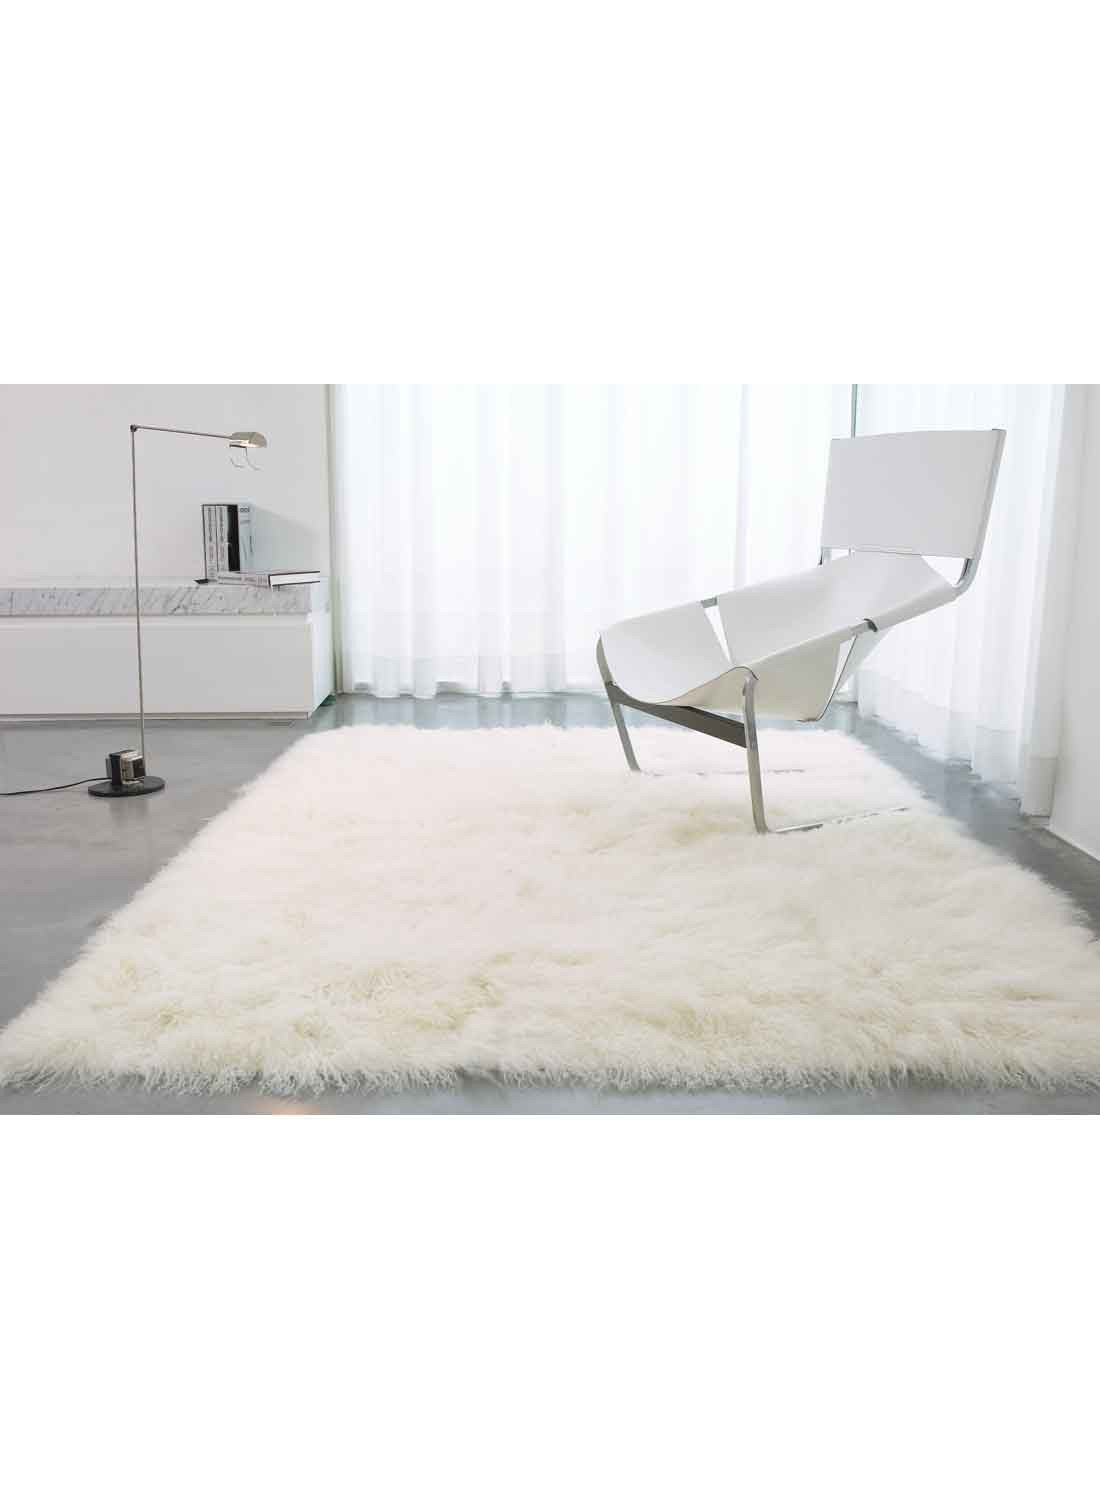 tapis poil long blanc id es de d coration int rieure. Black Bedroom Furniture Sets. Home Design Ideas